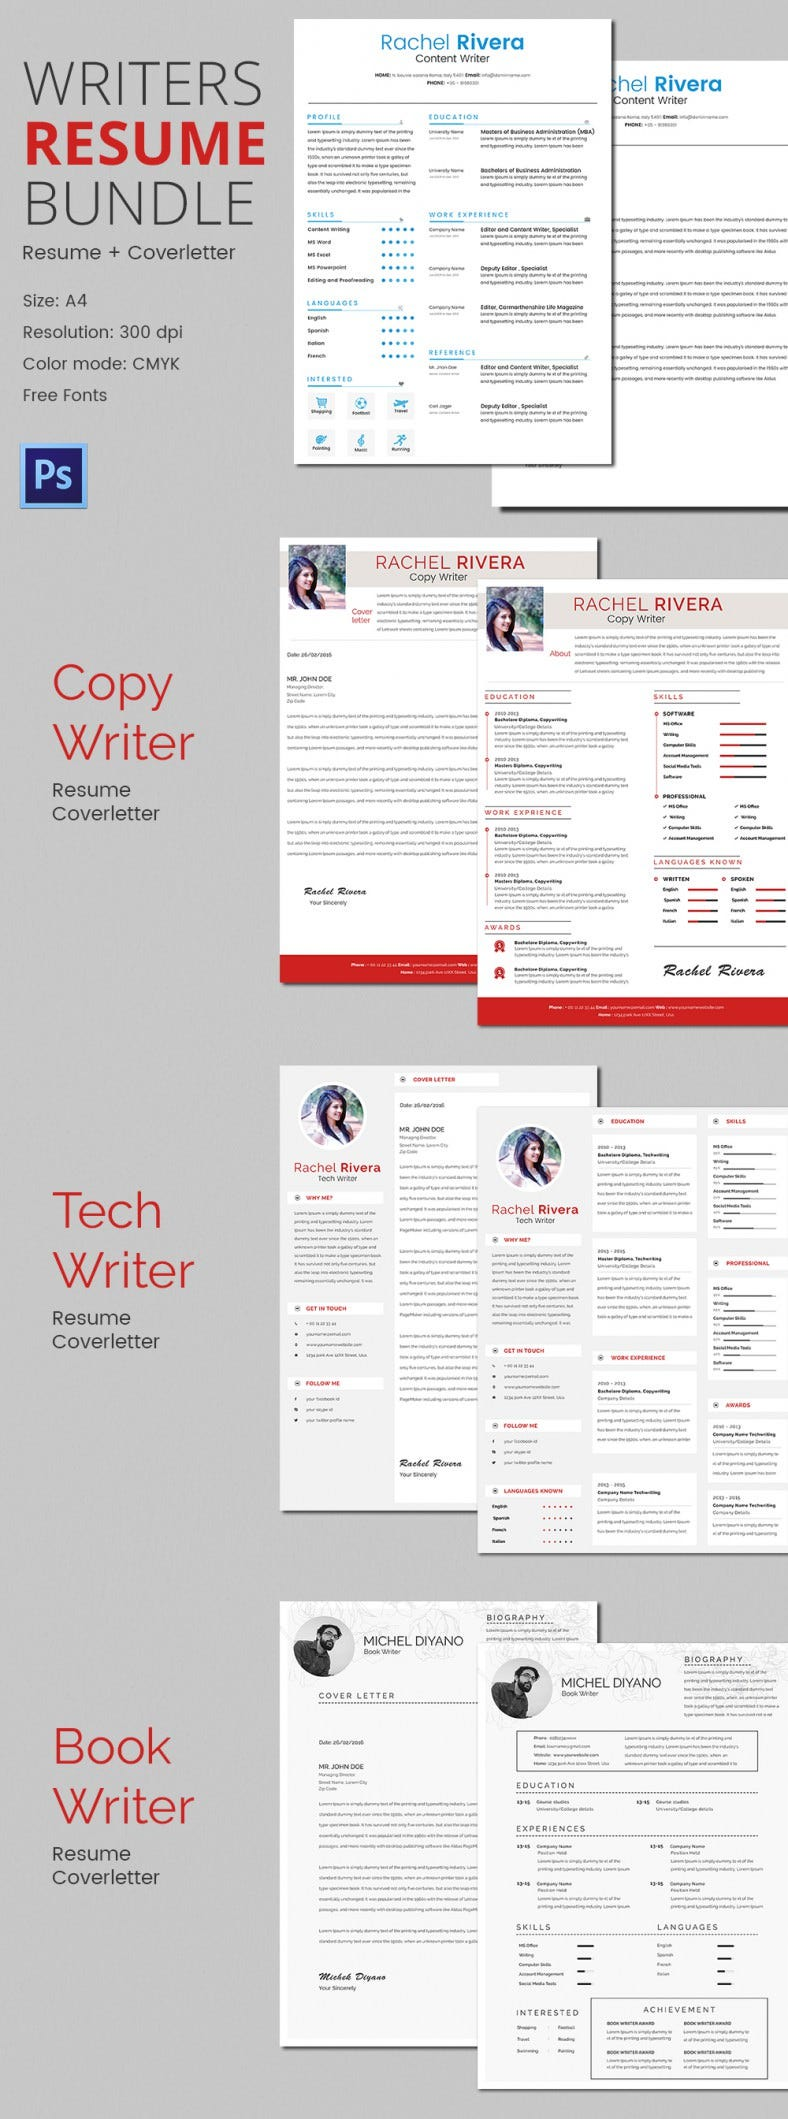 Free resume writing services nyc